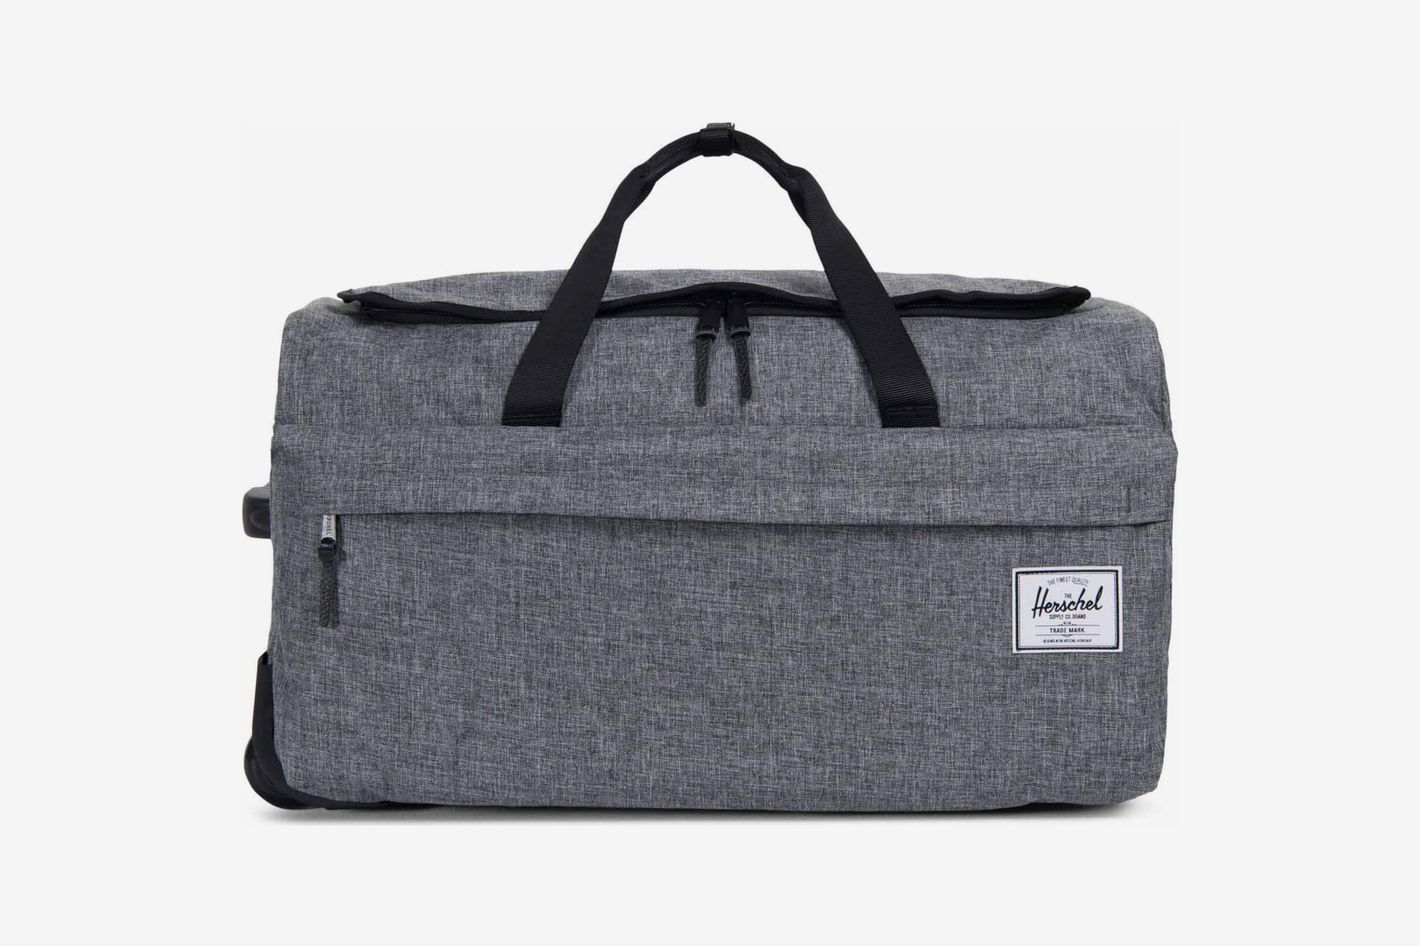 Herschel Supply Co Wheelie Rolling Carry On